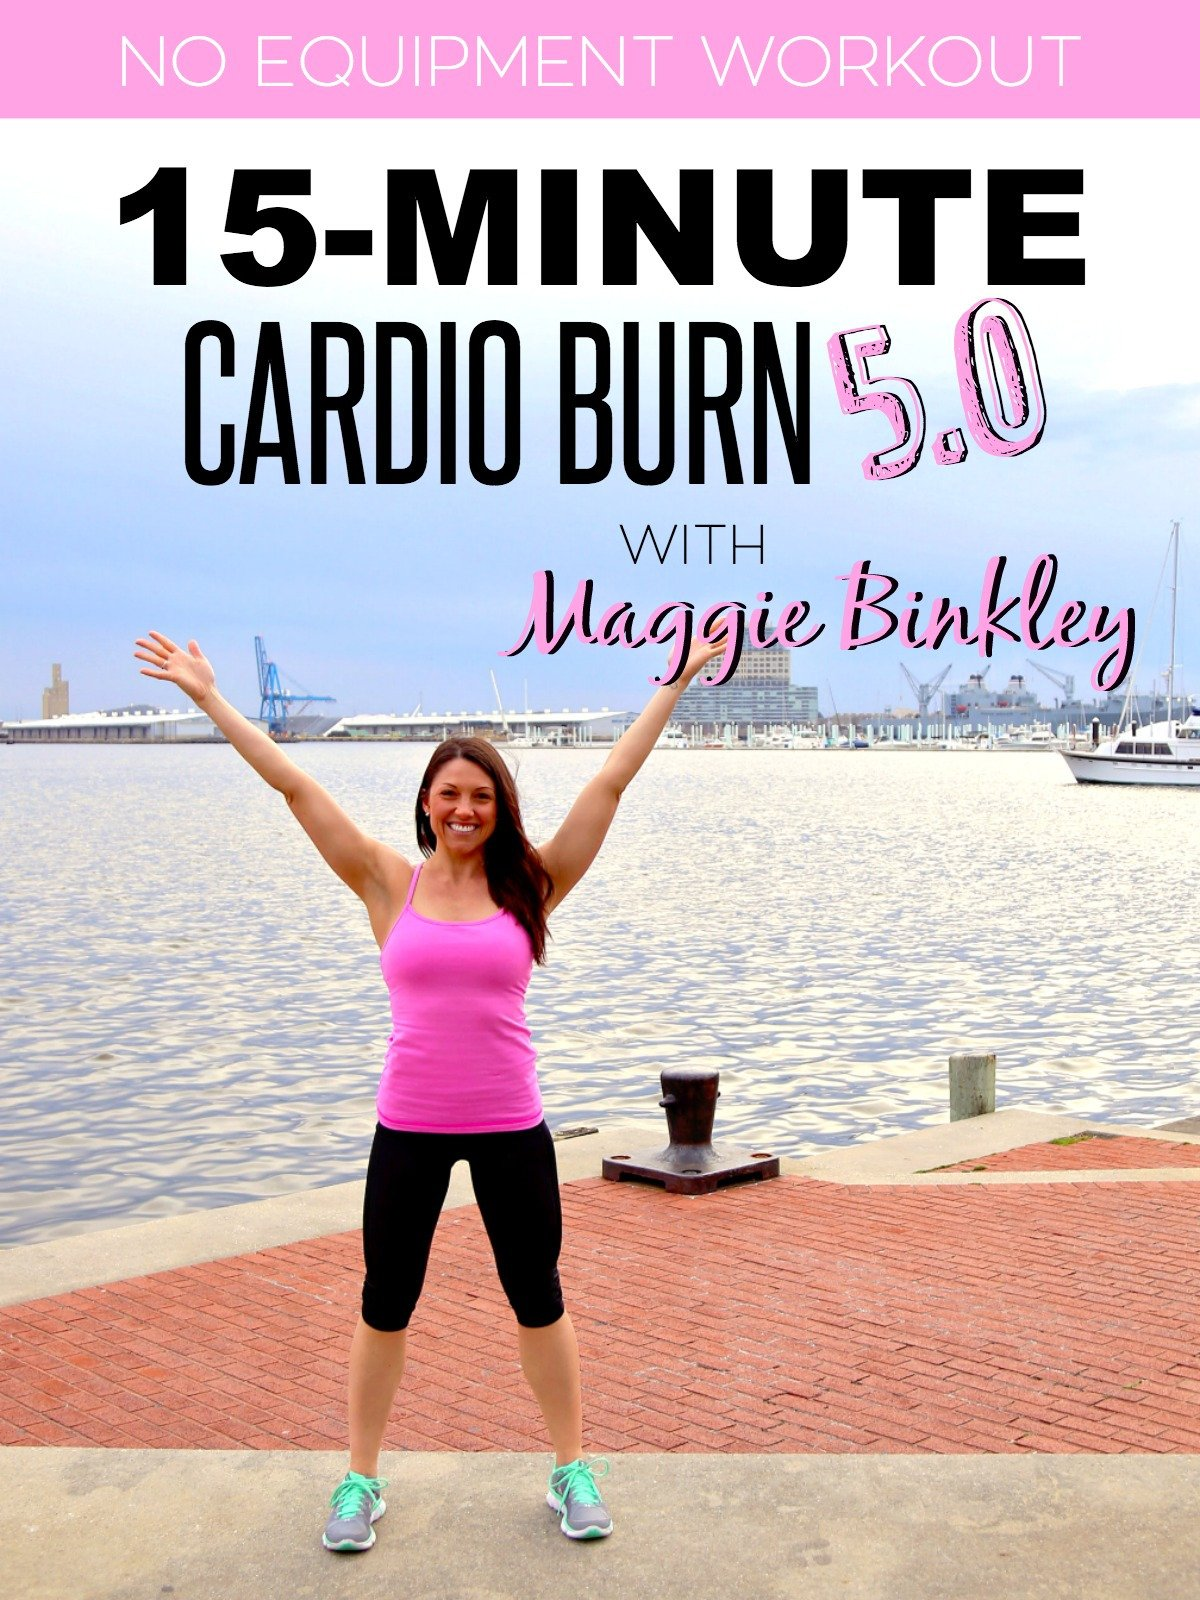 15-Minute Cardio Burn 5.0 Workout